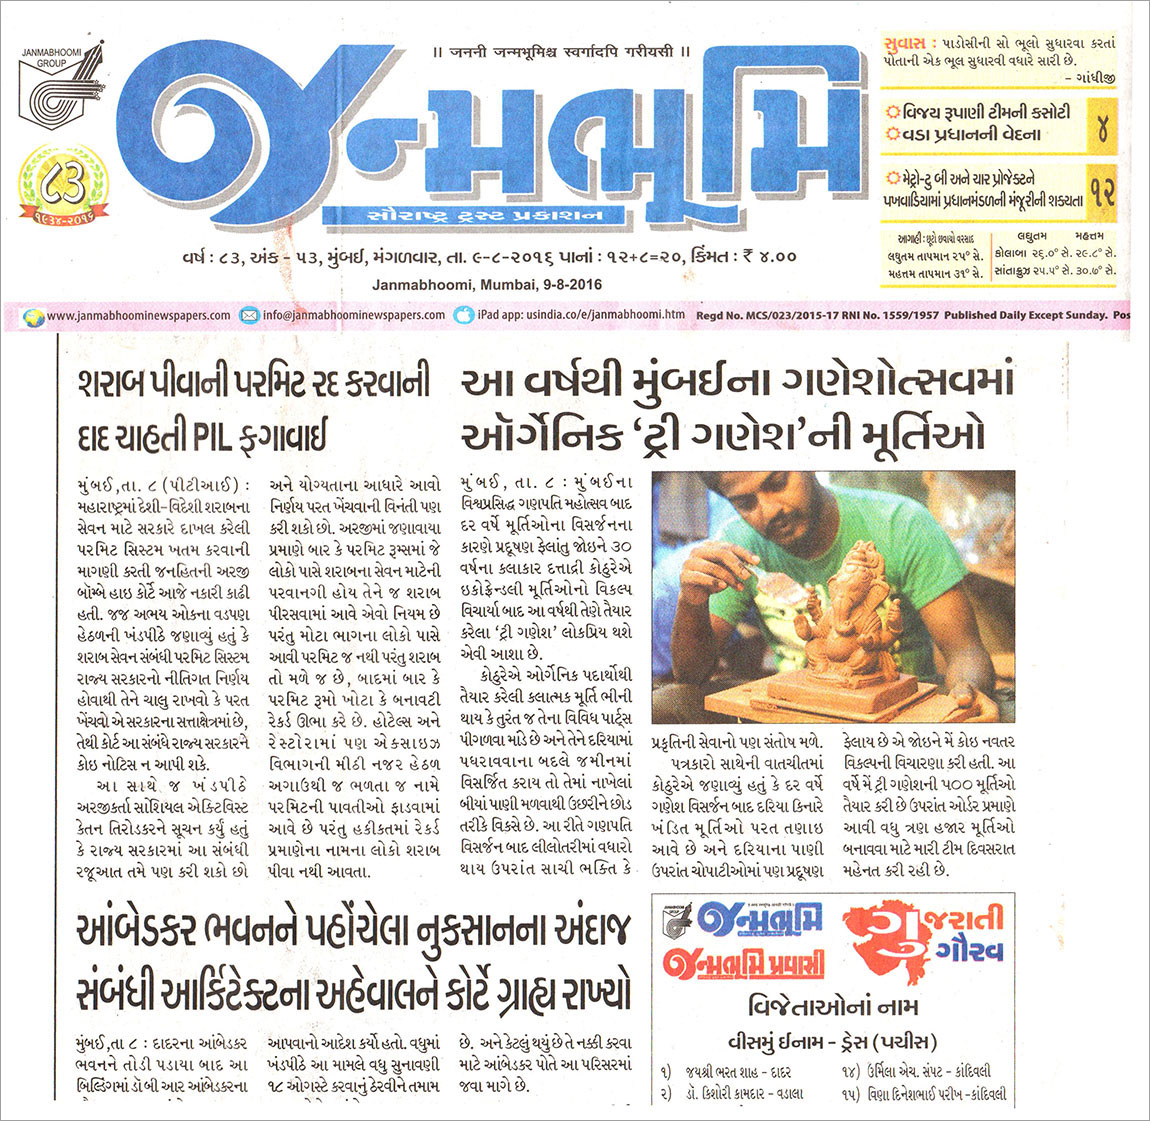 DNA newspaper, Treeganesha, articles, dattadri kothur, eco friendly,